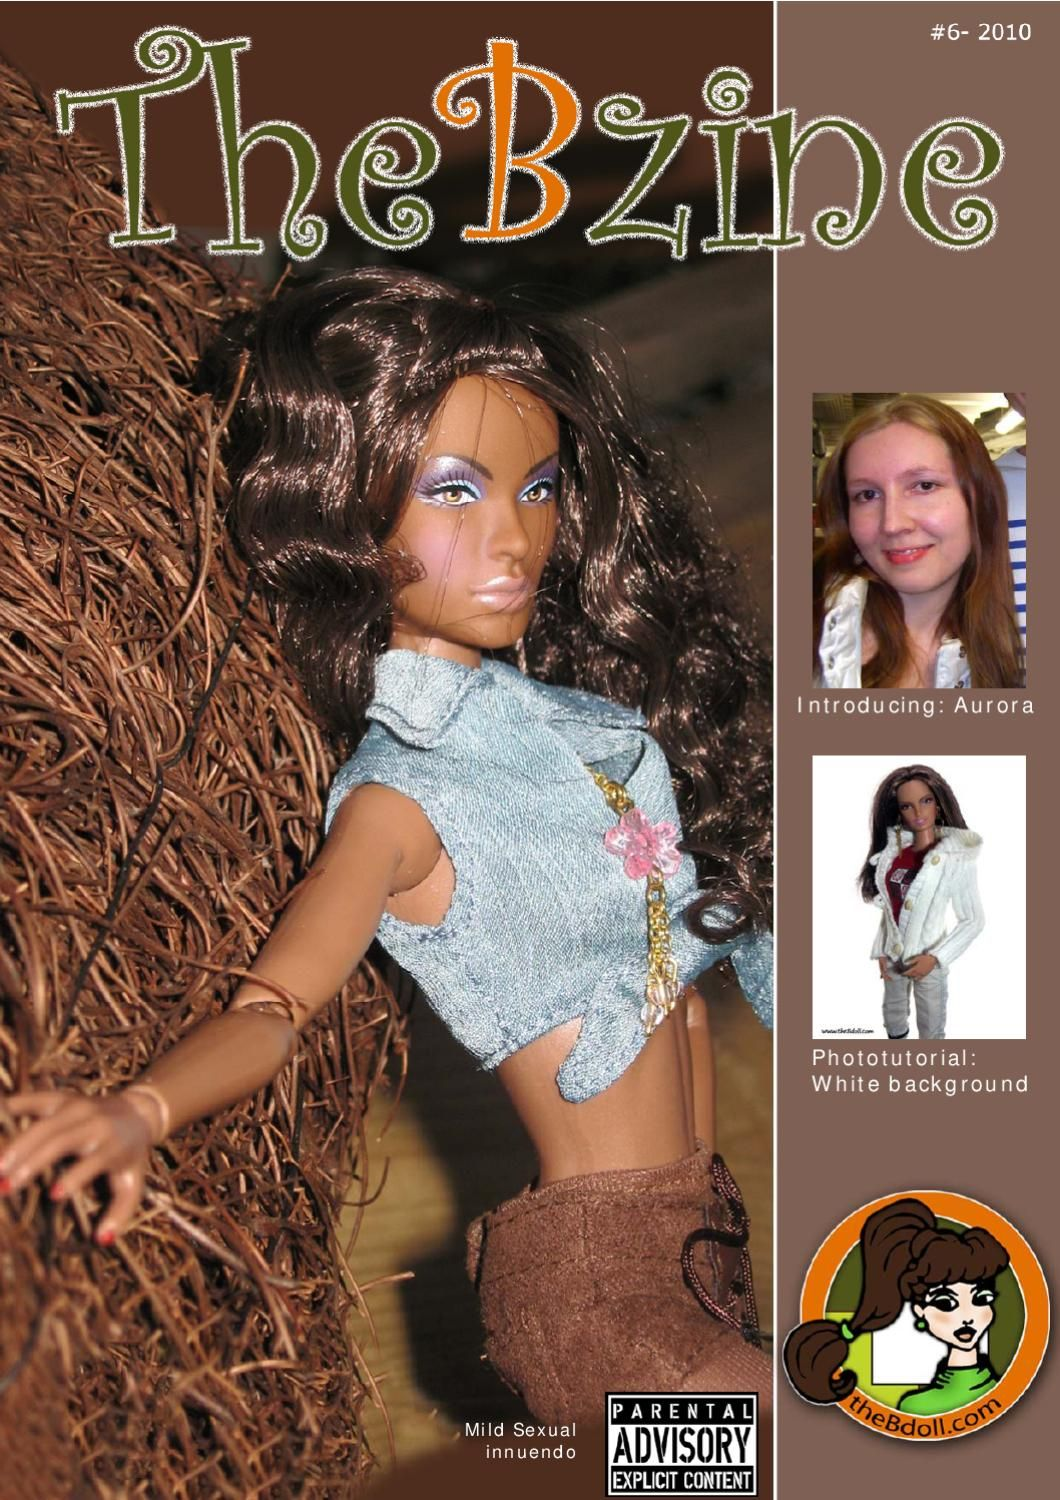 Barbie collector's magazine of an unofficial Barbie fan club. This publication is not associated with Mattel.